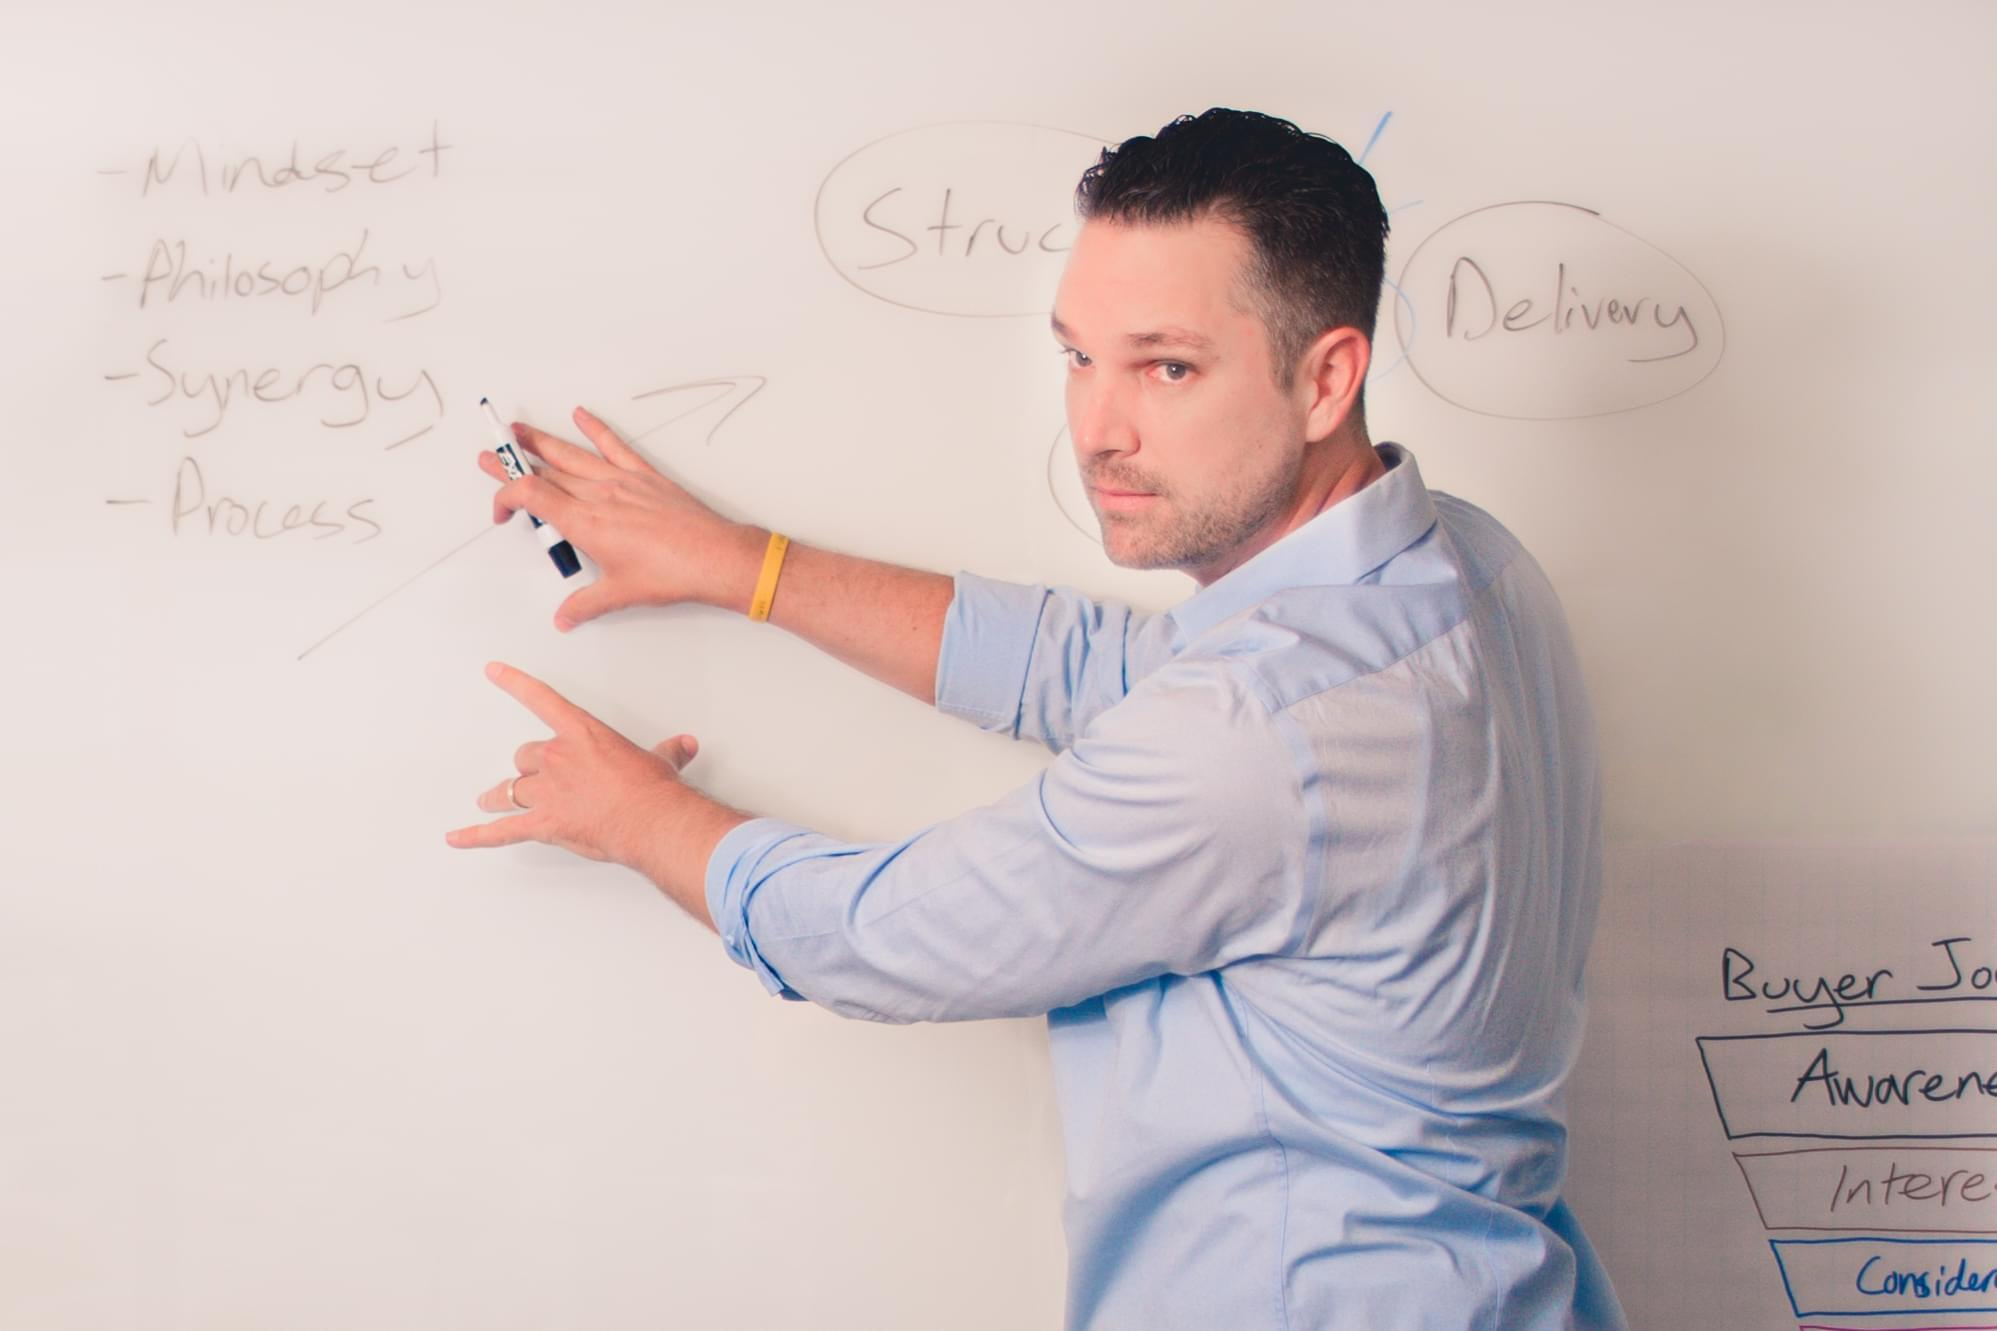 The Perfect Deal Process by Matt Wolach